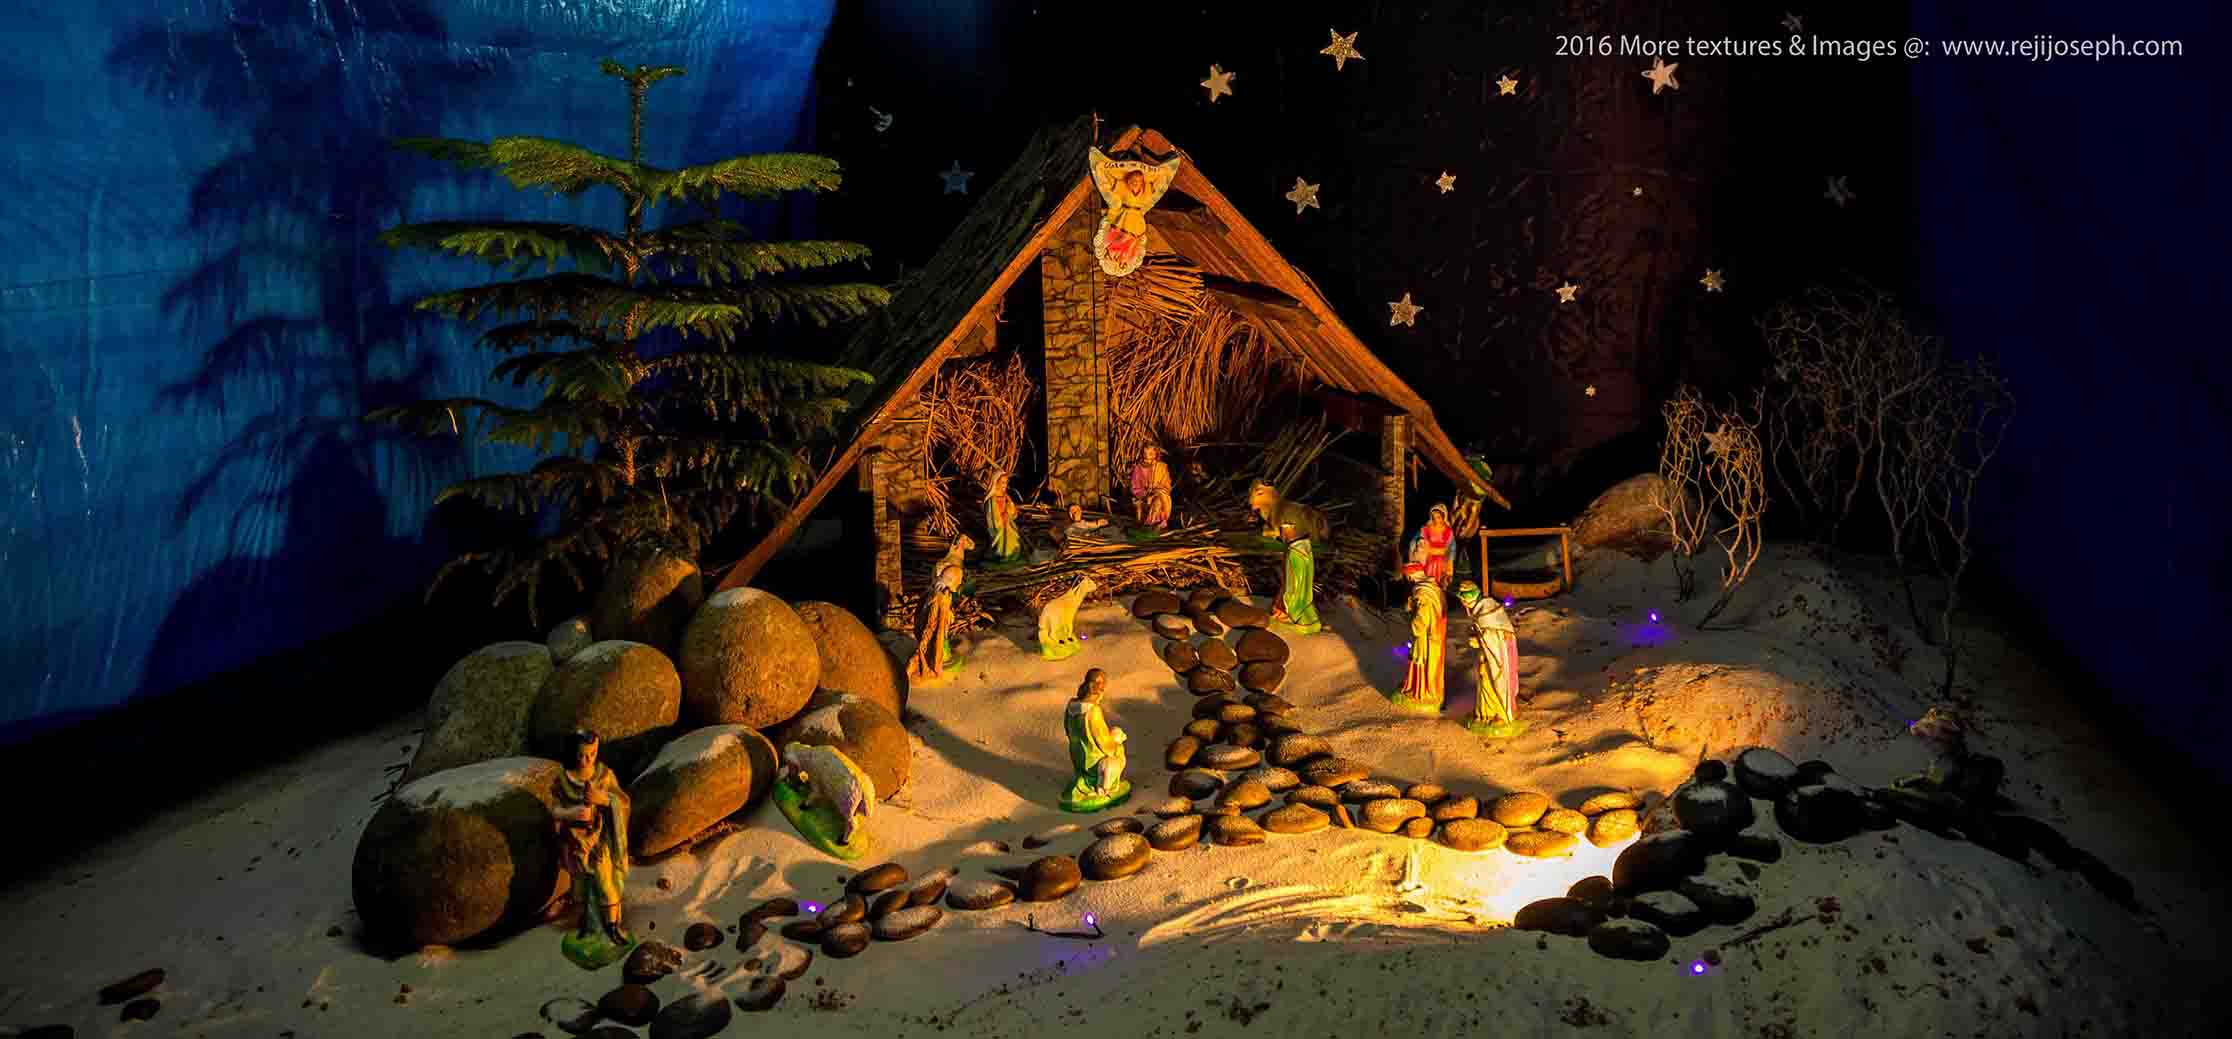 Christmas crib Pulkoodu St. George Forane Church Edappally 00009